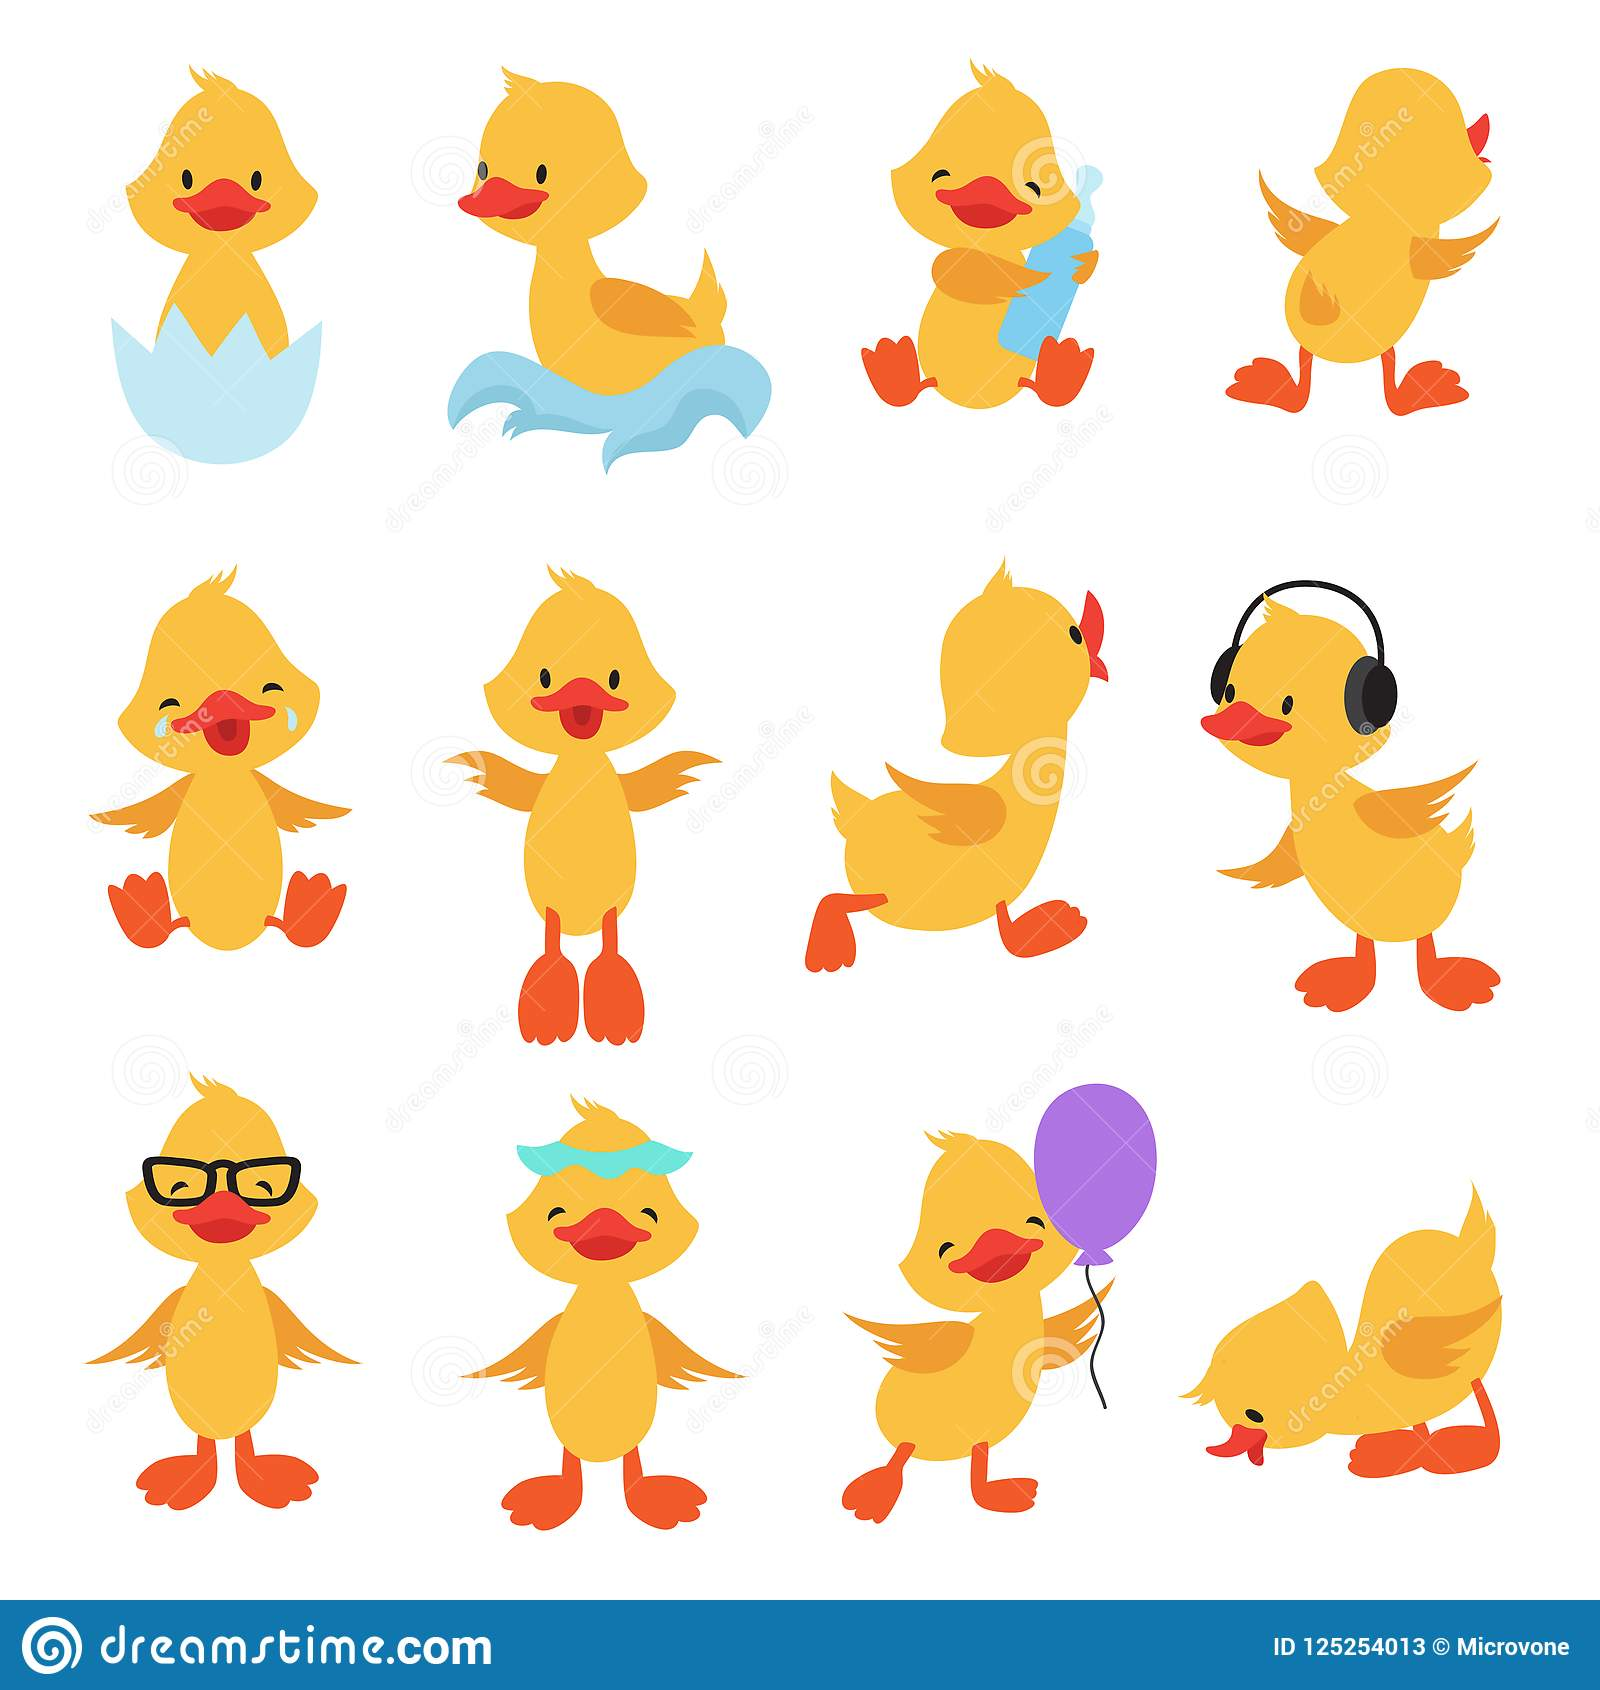 Cute Chicks Cartoon Yellow Ducks Baby Duck Vector Set Stock Vector Illustration Of Lovely Cartoon 125254013